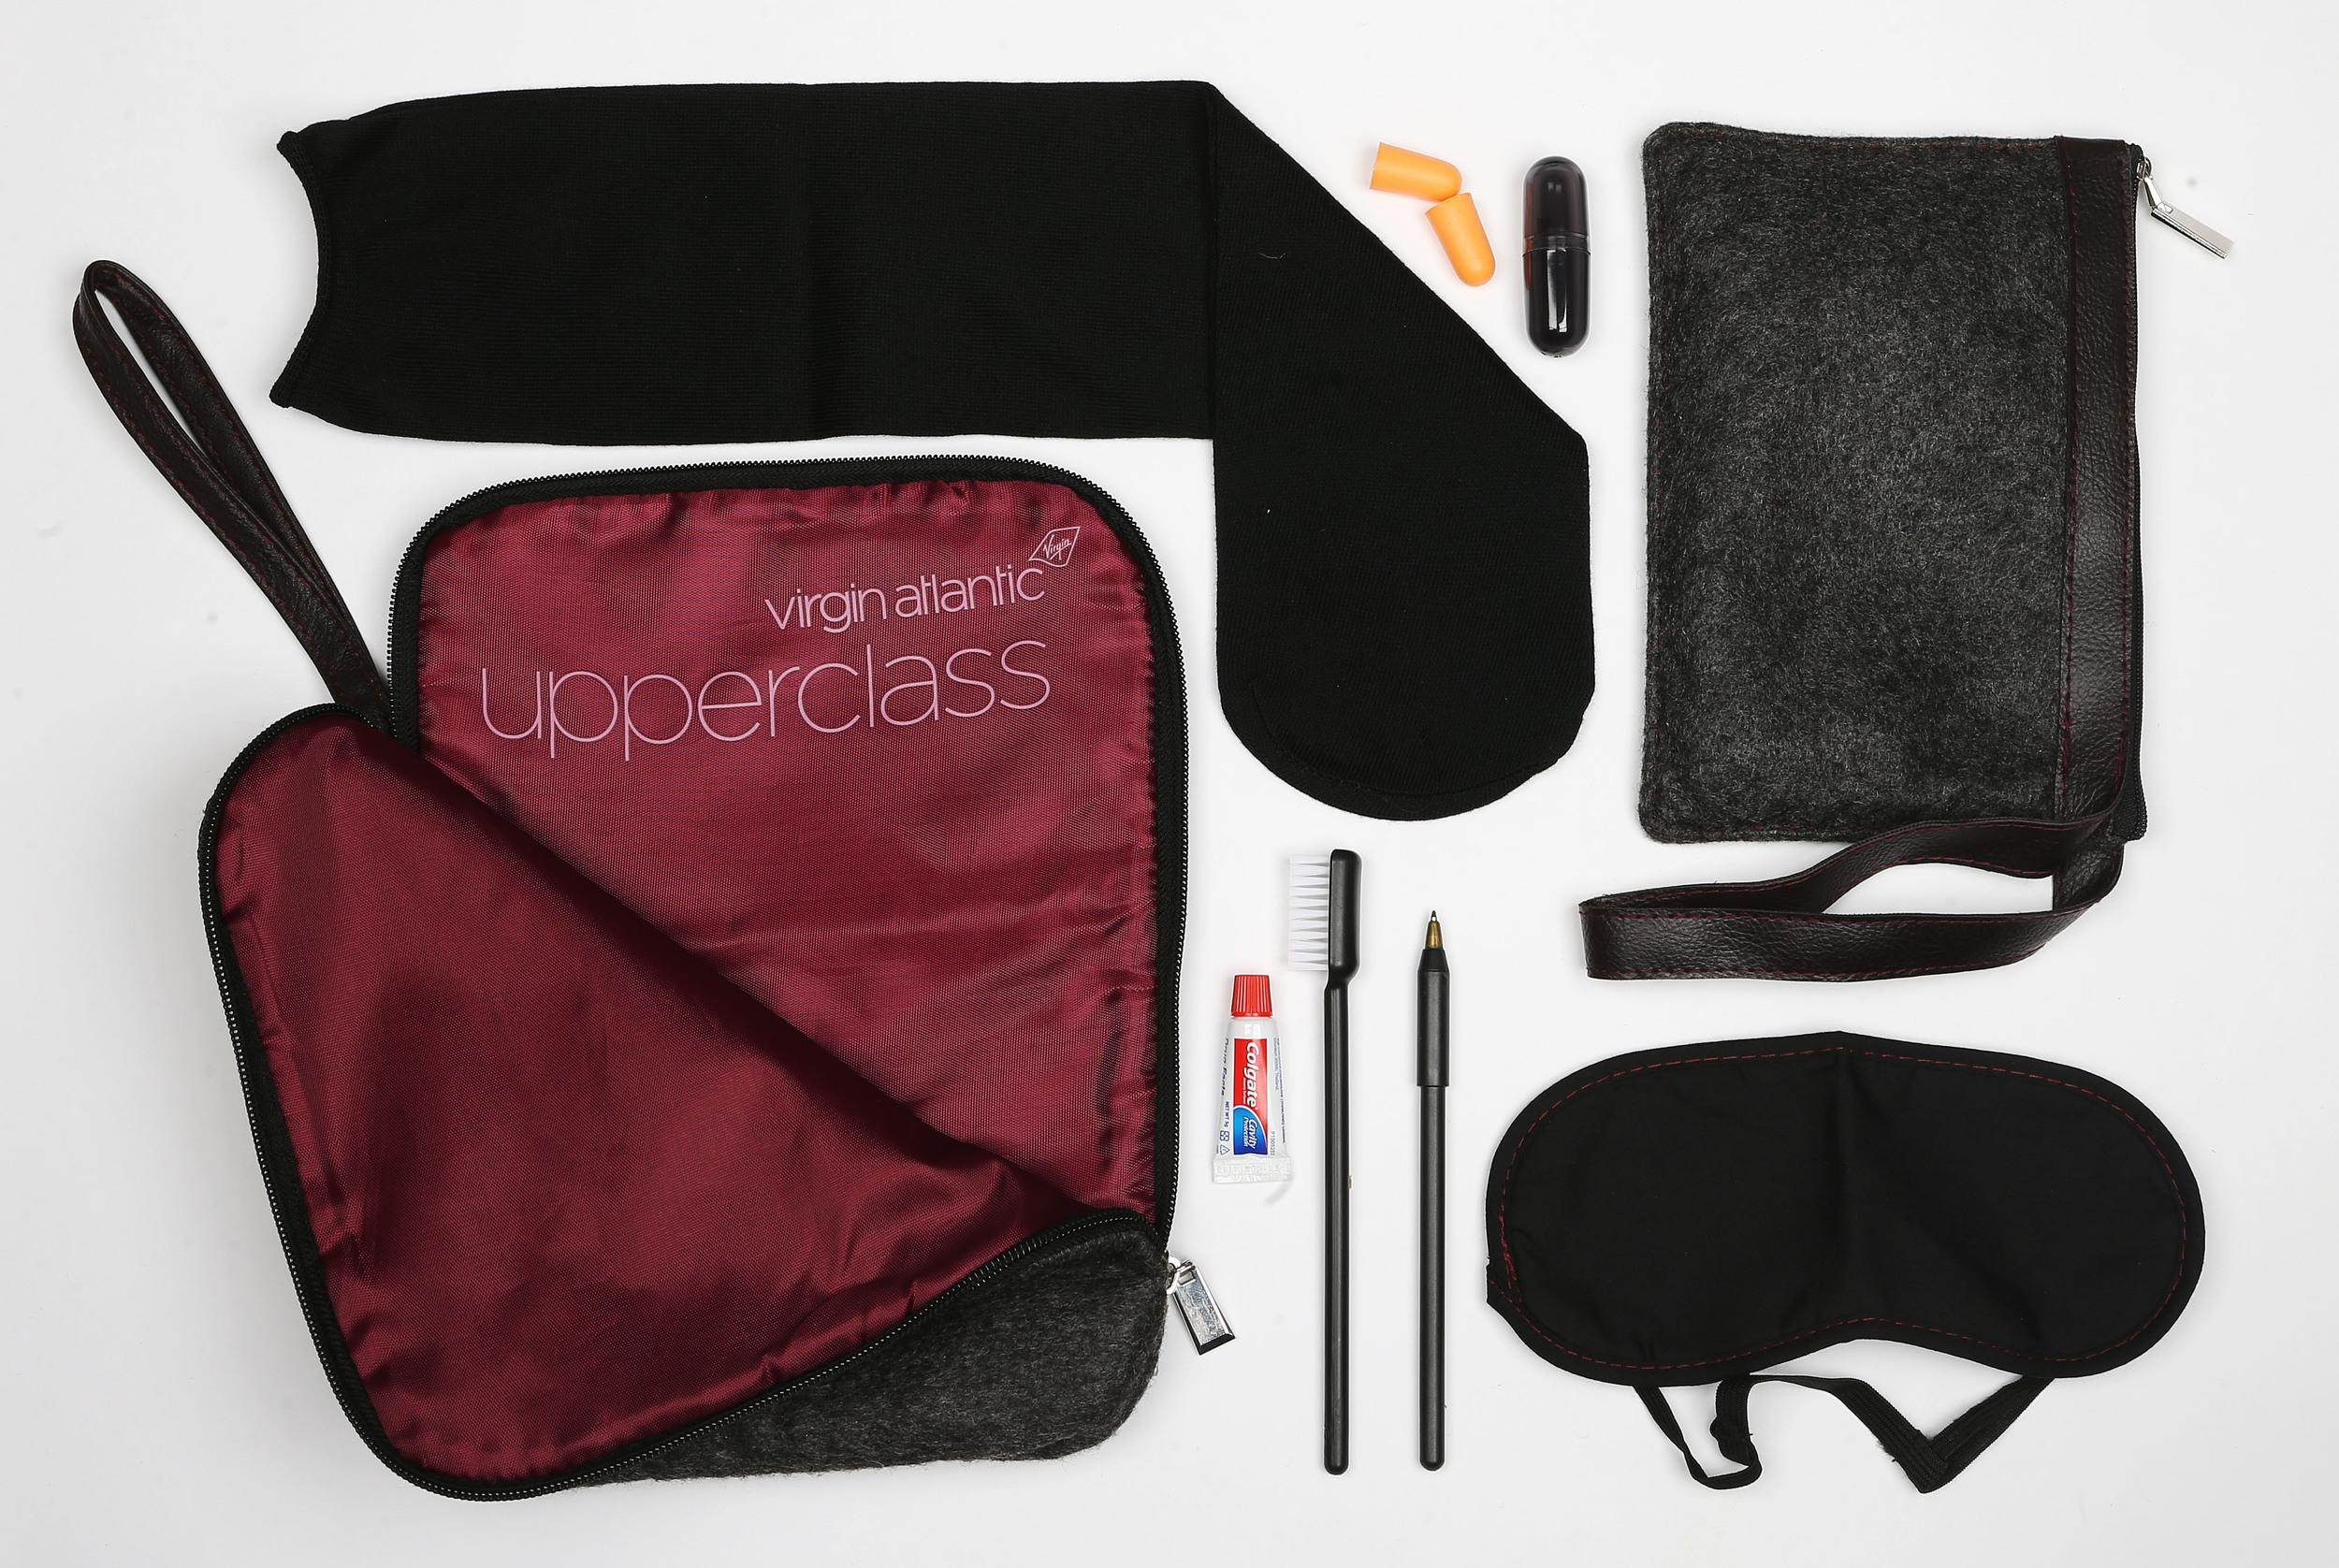 <p><strong>What do you get?</strong> The Outbound Kit is tablet sized, charcoal grey with black-cherry stitching and a snazzy, silk lining (branded attractively as Virgin Atlantic Upper Class) and contains socks, a pen, toothbrush, eye mask, tissues, toothpaste, ear plugs, a paper envelope for Change for Children<br /> The Inbound Kit is perfectly sized as a change purse (or pencil case for a lucky child) and contains: Socks, eye mask, toothbrush, toothpaste, tissues, pen, ear plugs, Change for Children envelope<br /> <strong>Best bit of the kit?</strong> The bags. Best-thought out bags.</p>